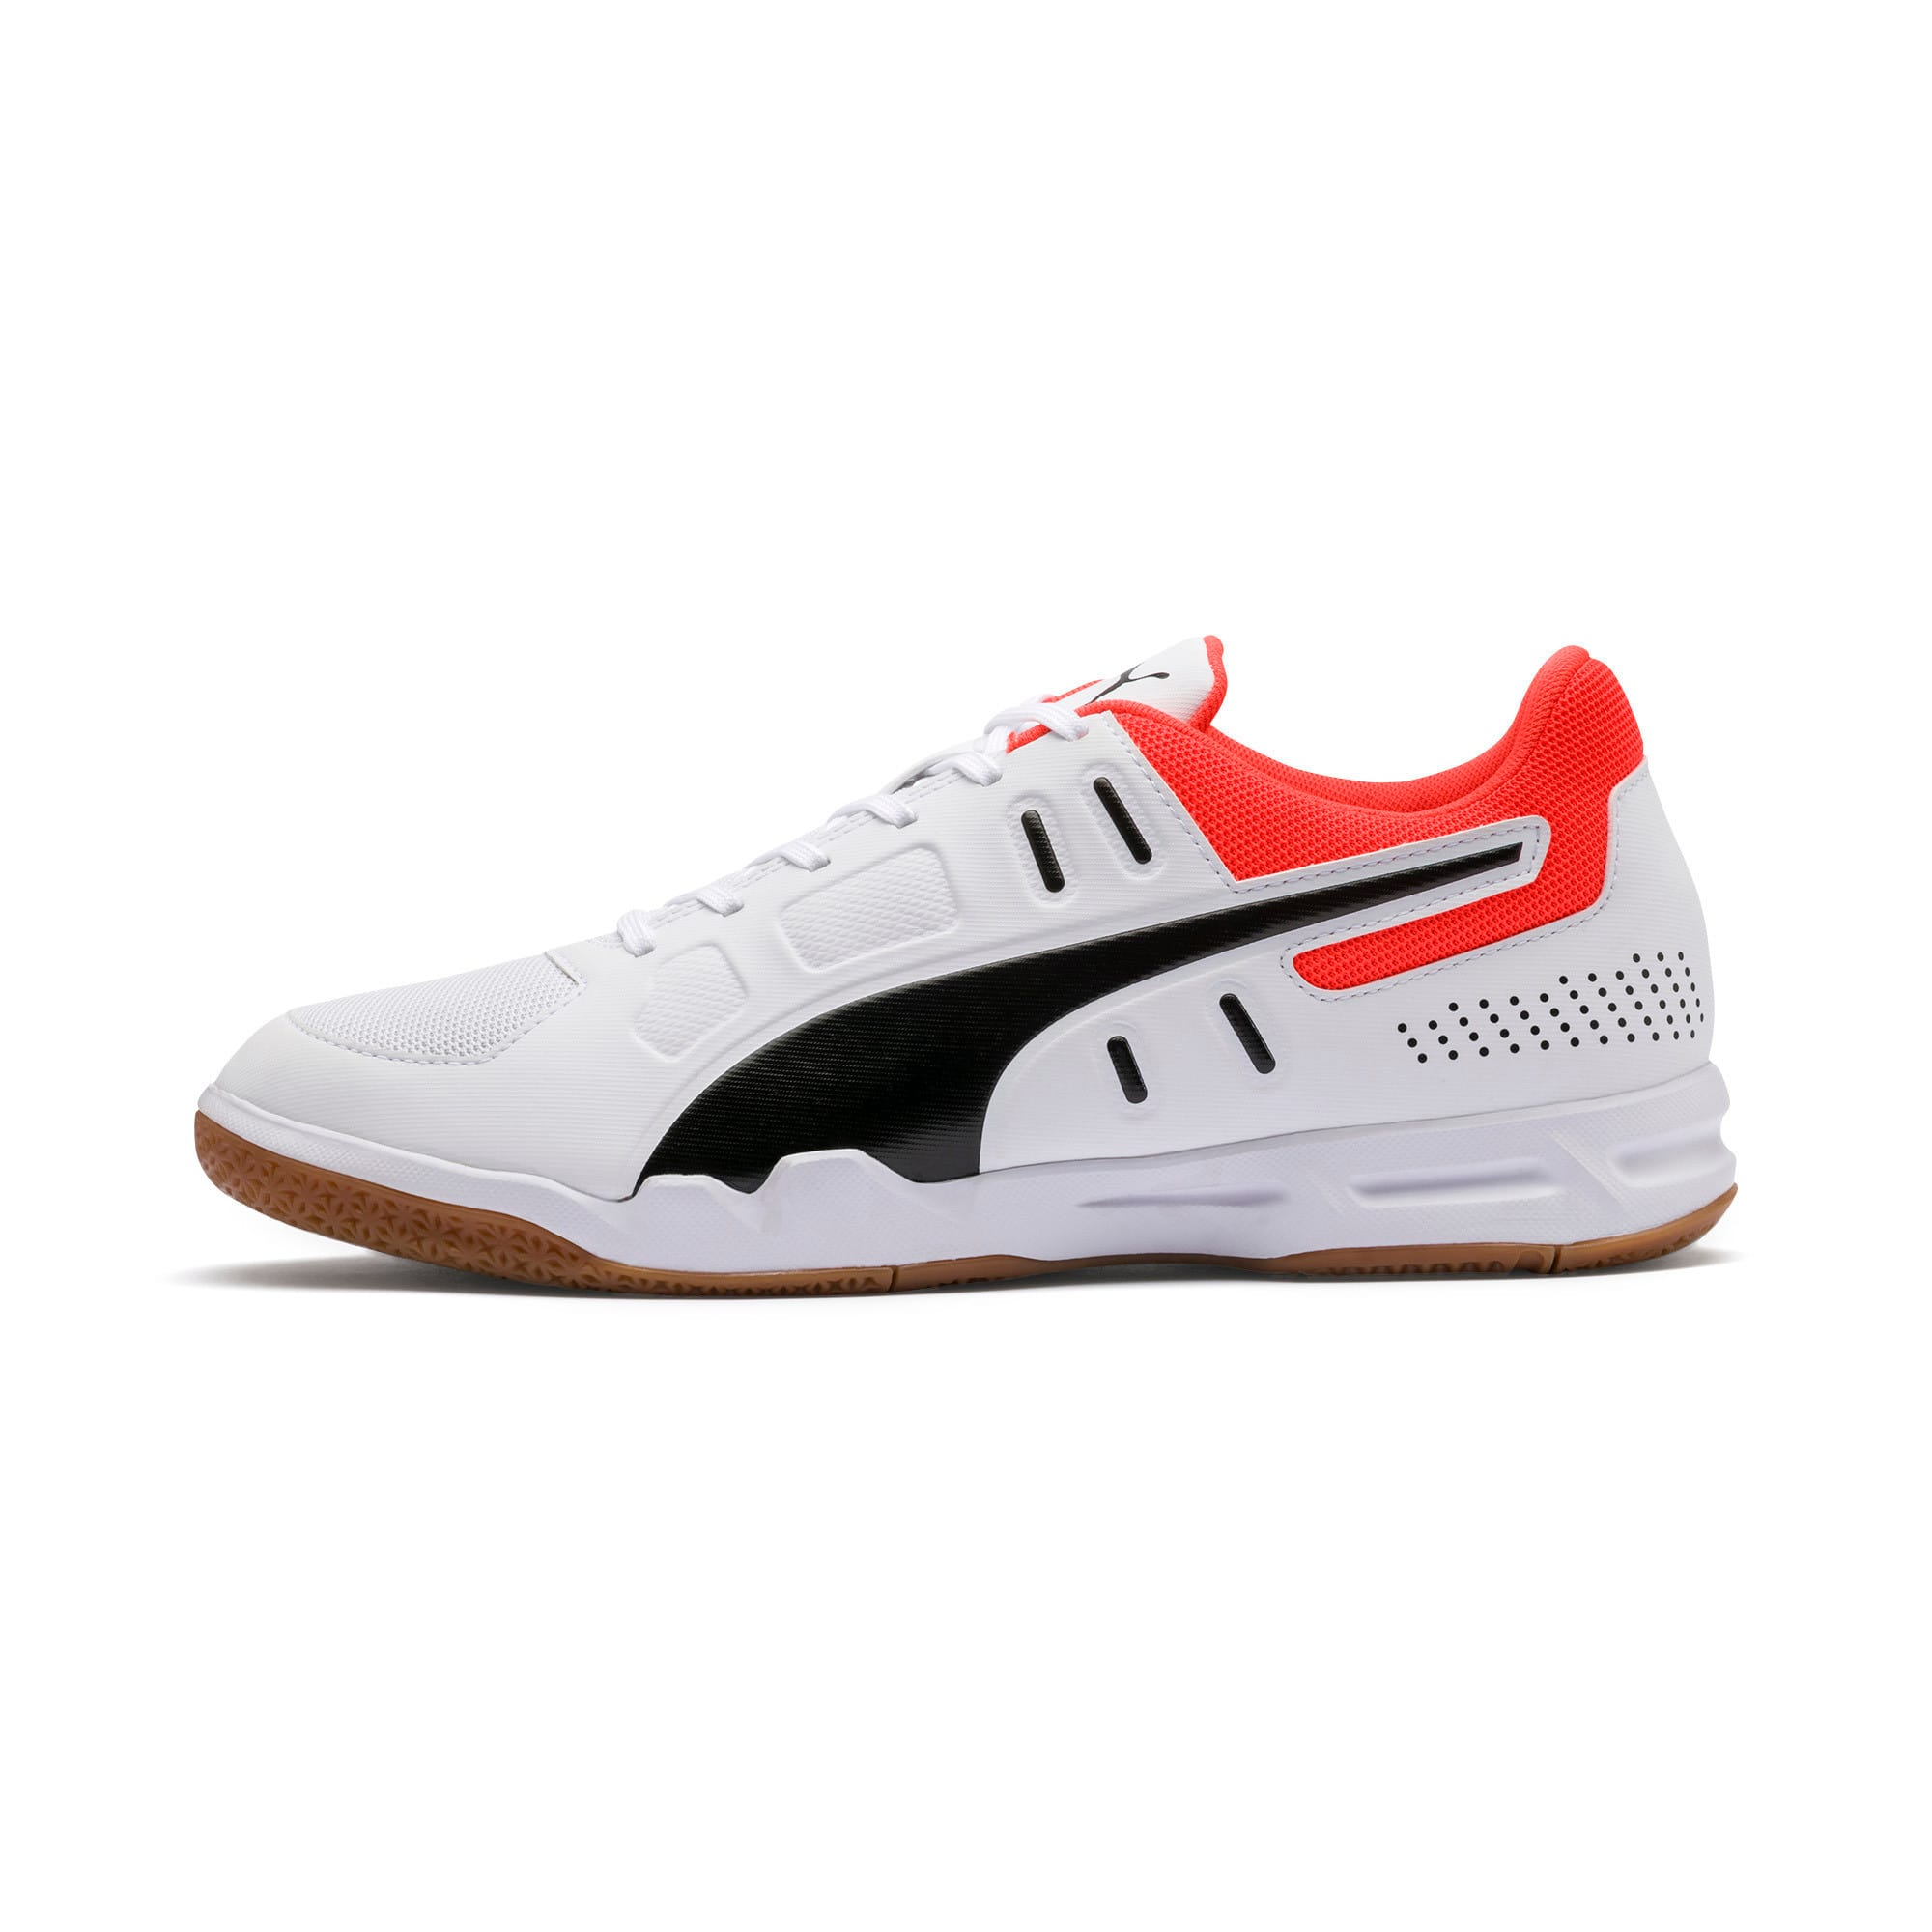 Thumbnail 1 of Auriz Indoor Sport Men's Trainers, White-Black-Nrgy Red-Gum, medium